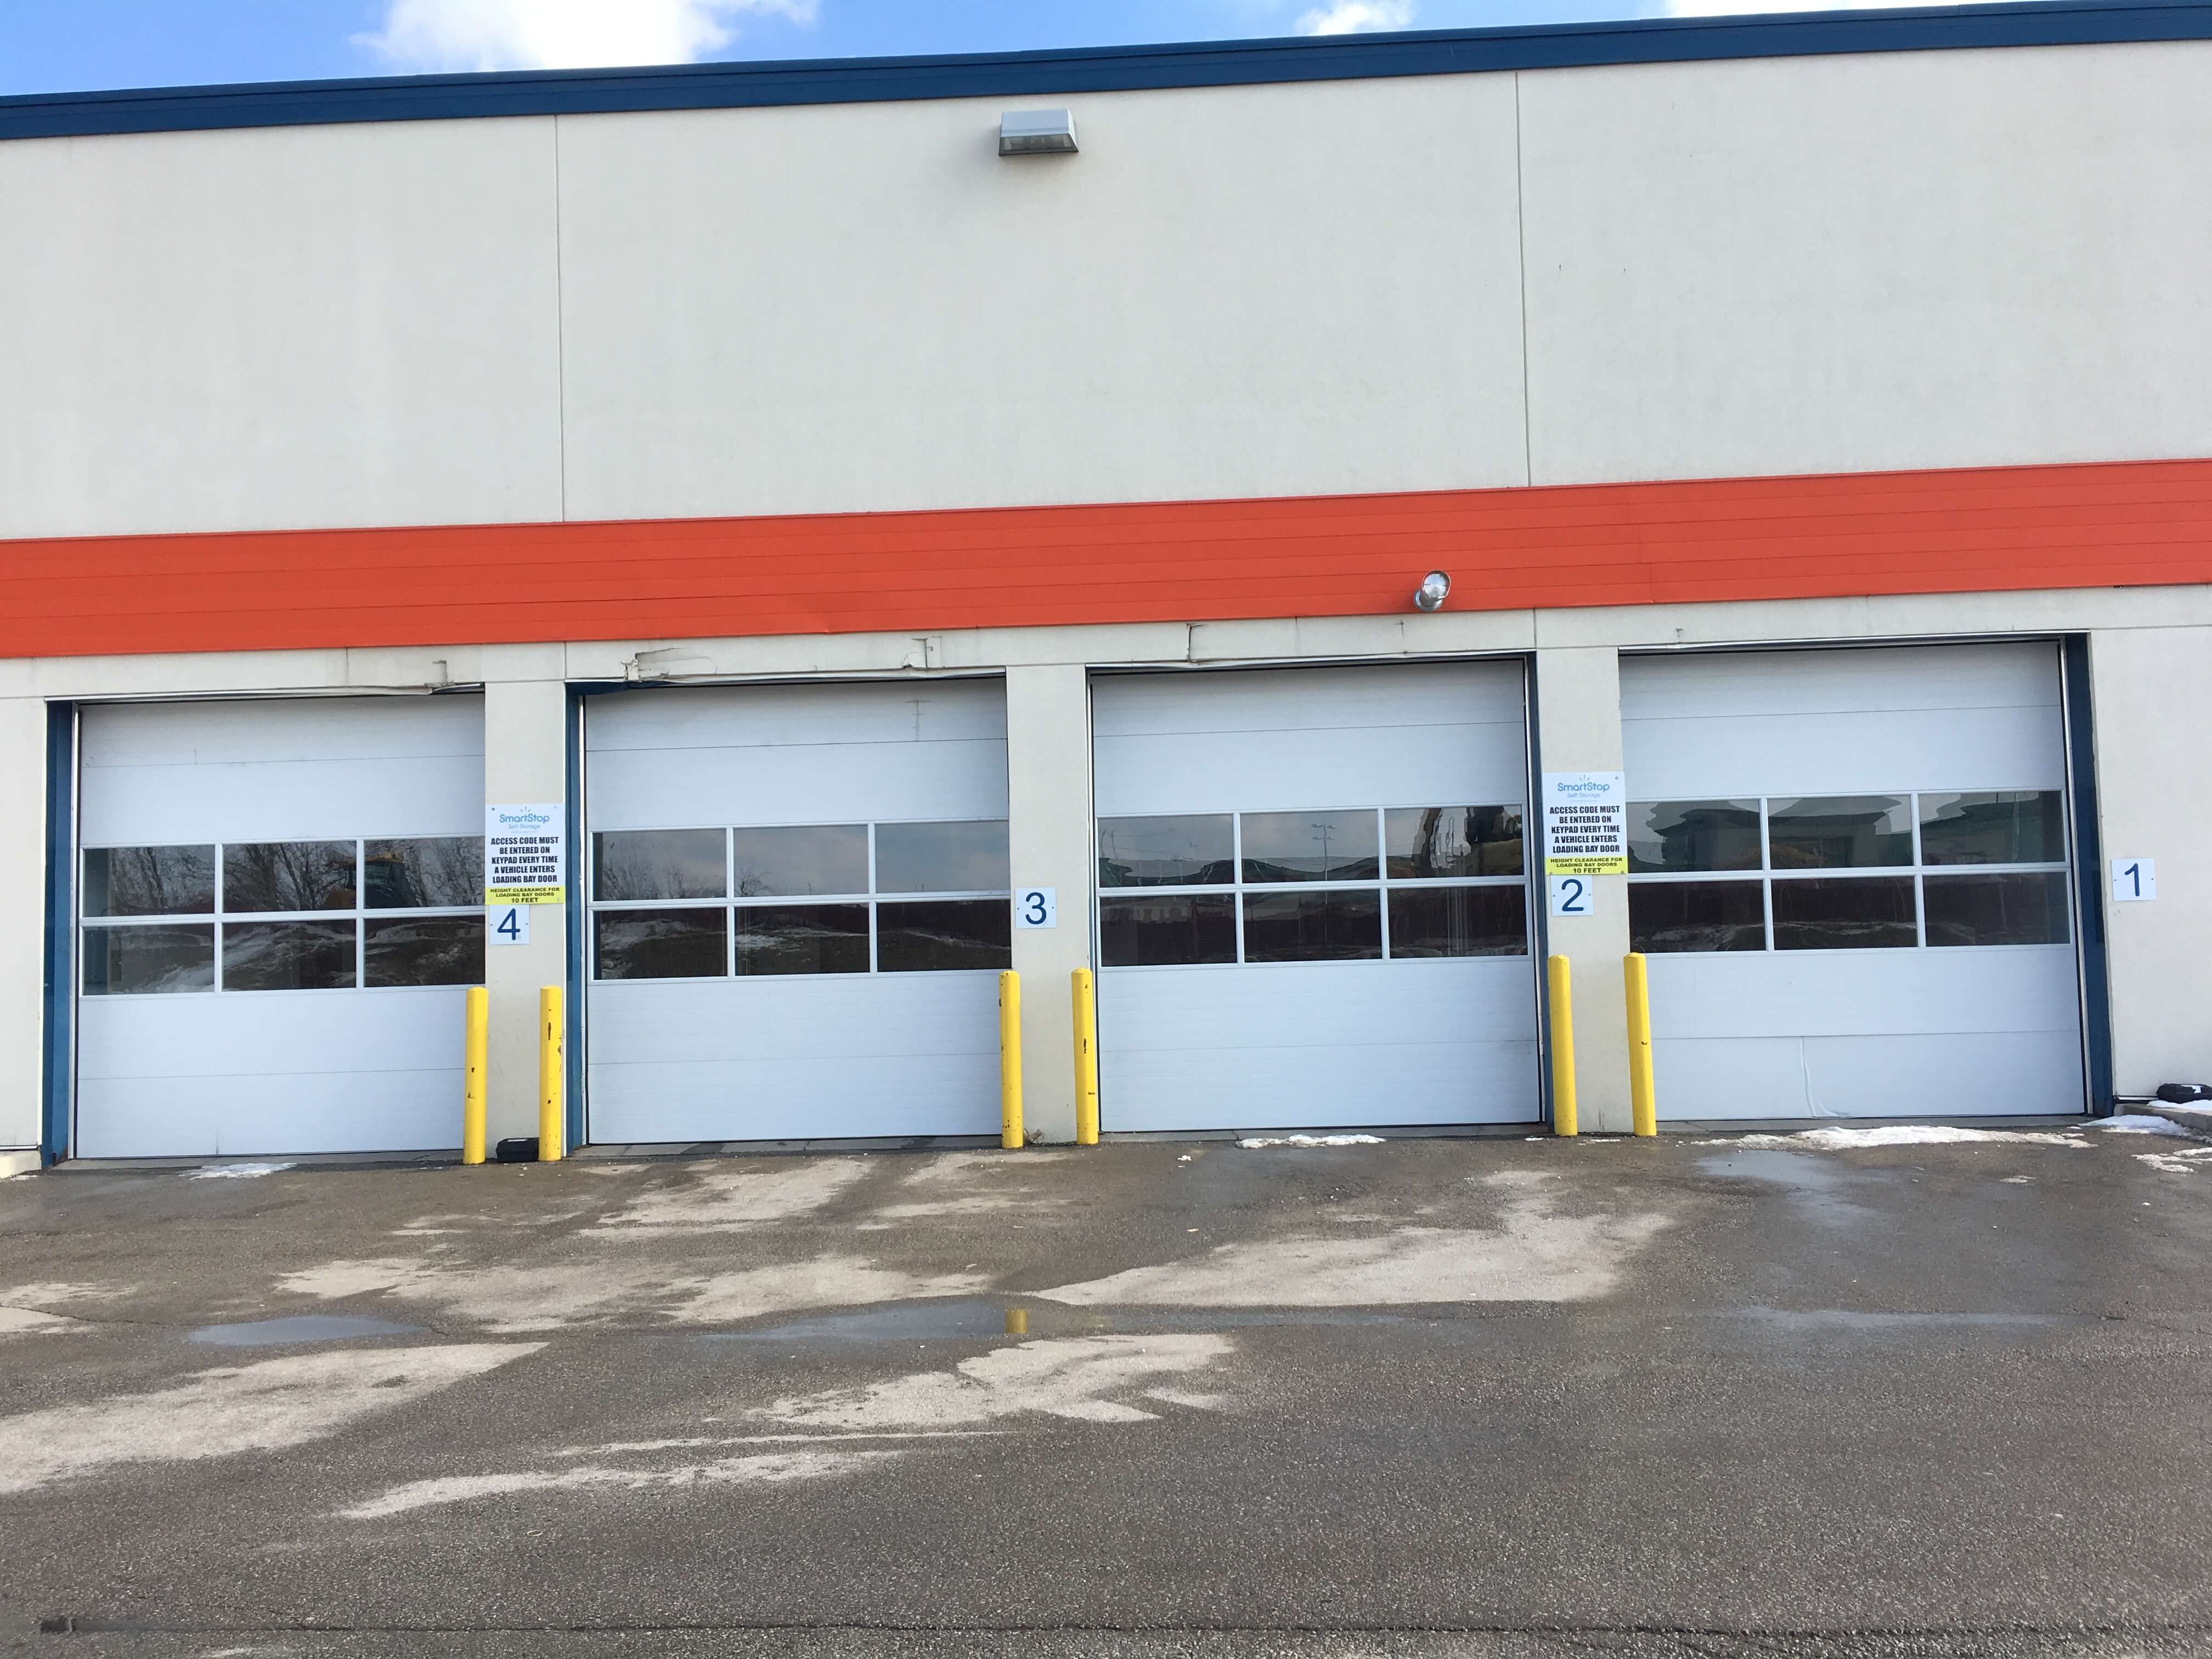 Loading dock entry at Smart Stop self storage facility located at 1207 Appleby Line, Burlington Ontario Canada